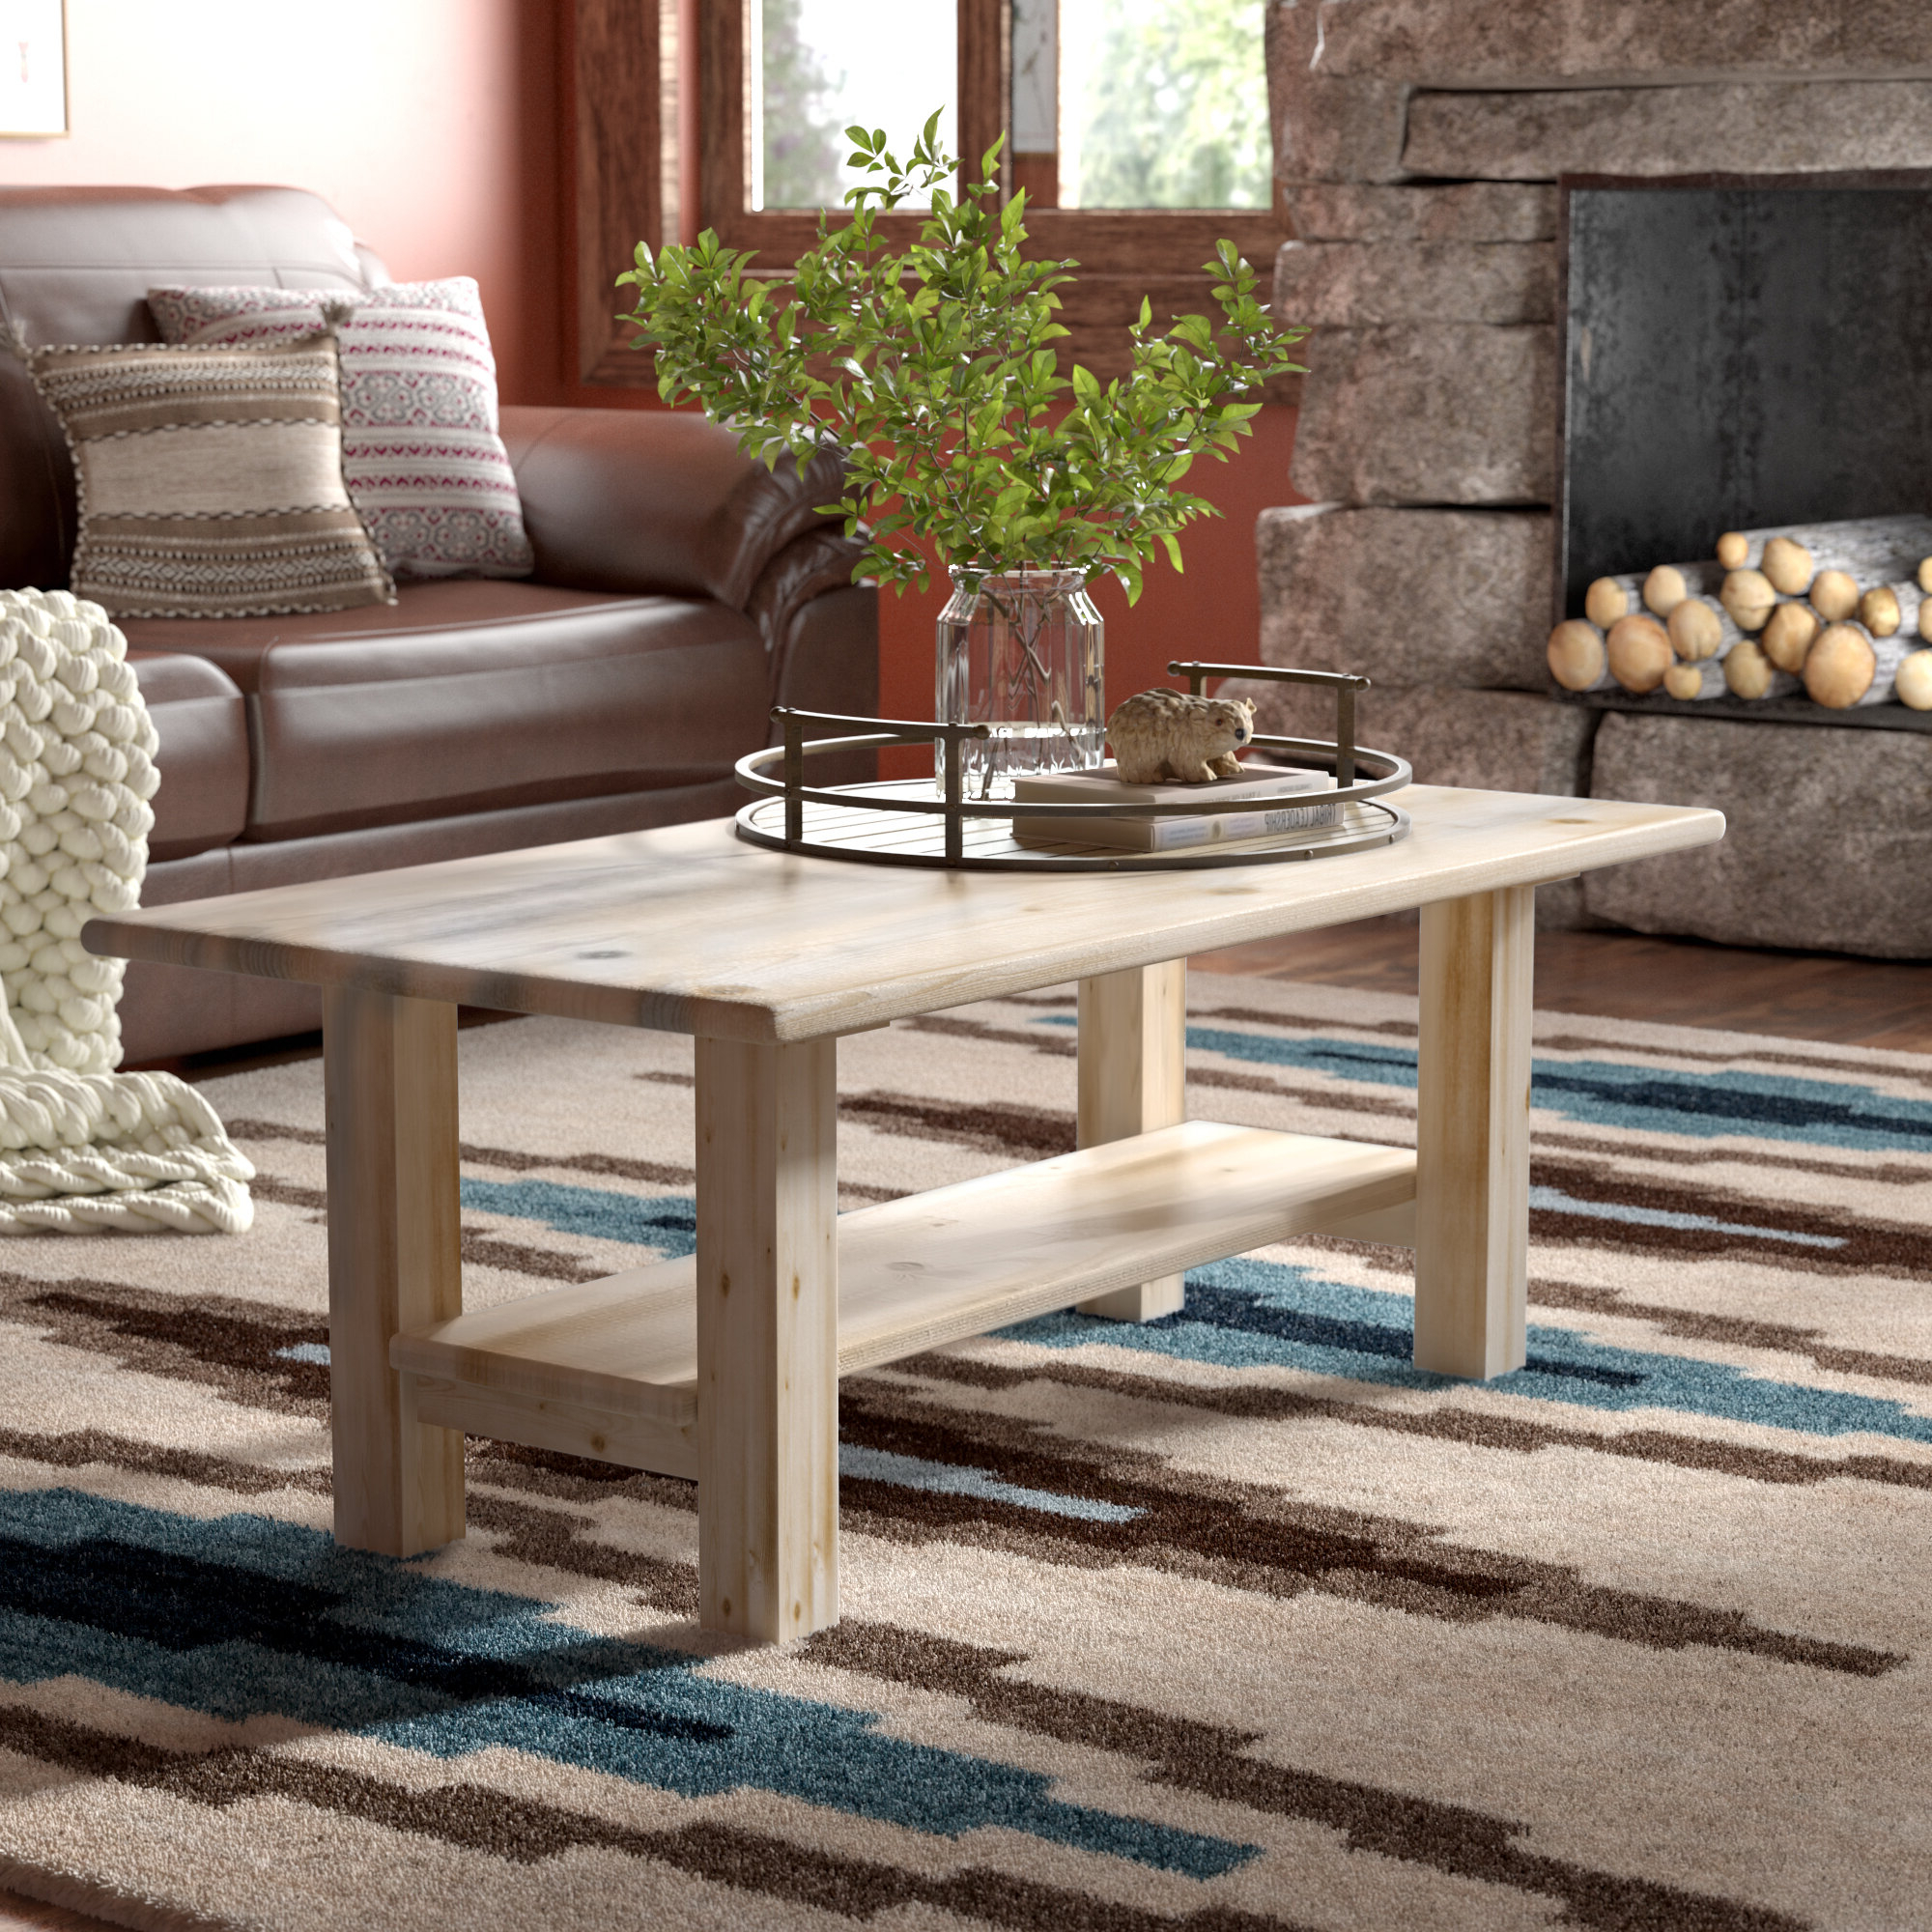 Newest Furniture Of America Charlotte Weathered Oak Glass Top Coffee Tables Within Abella Coffee Table With Shelf (View 17 of 20)